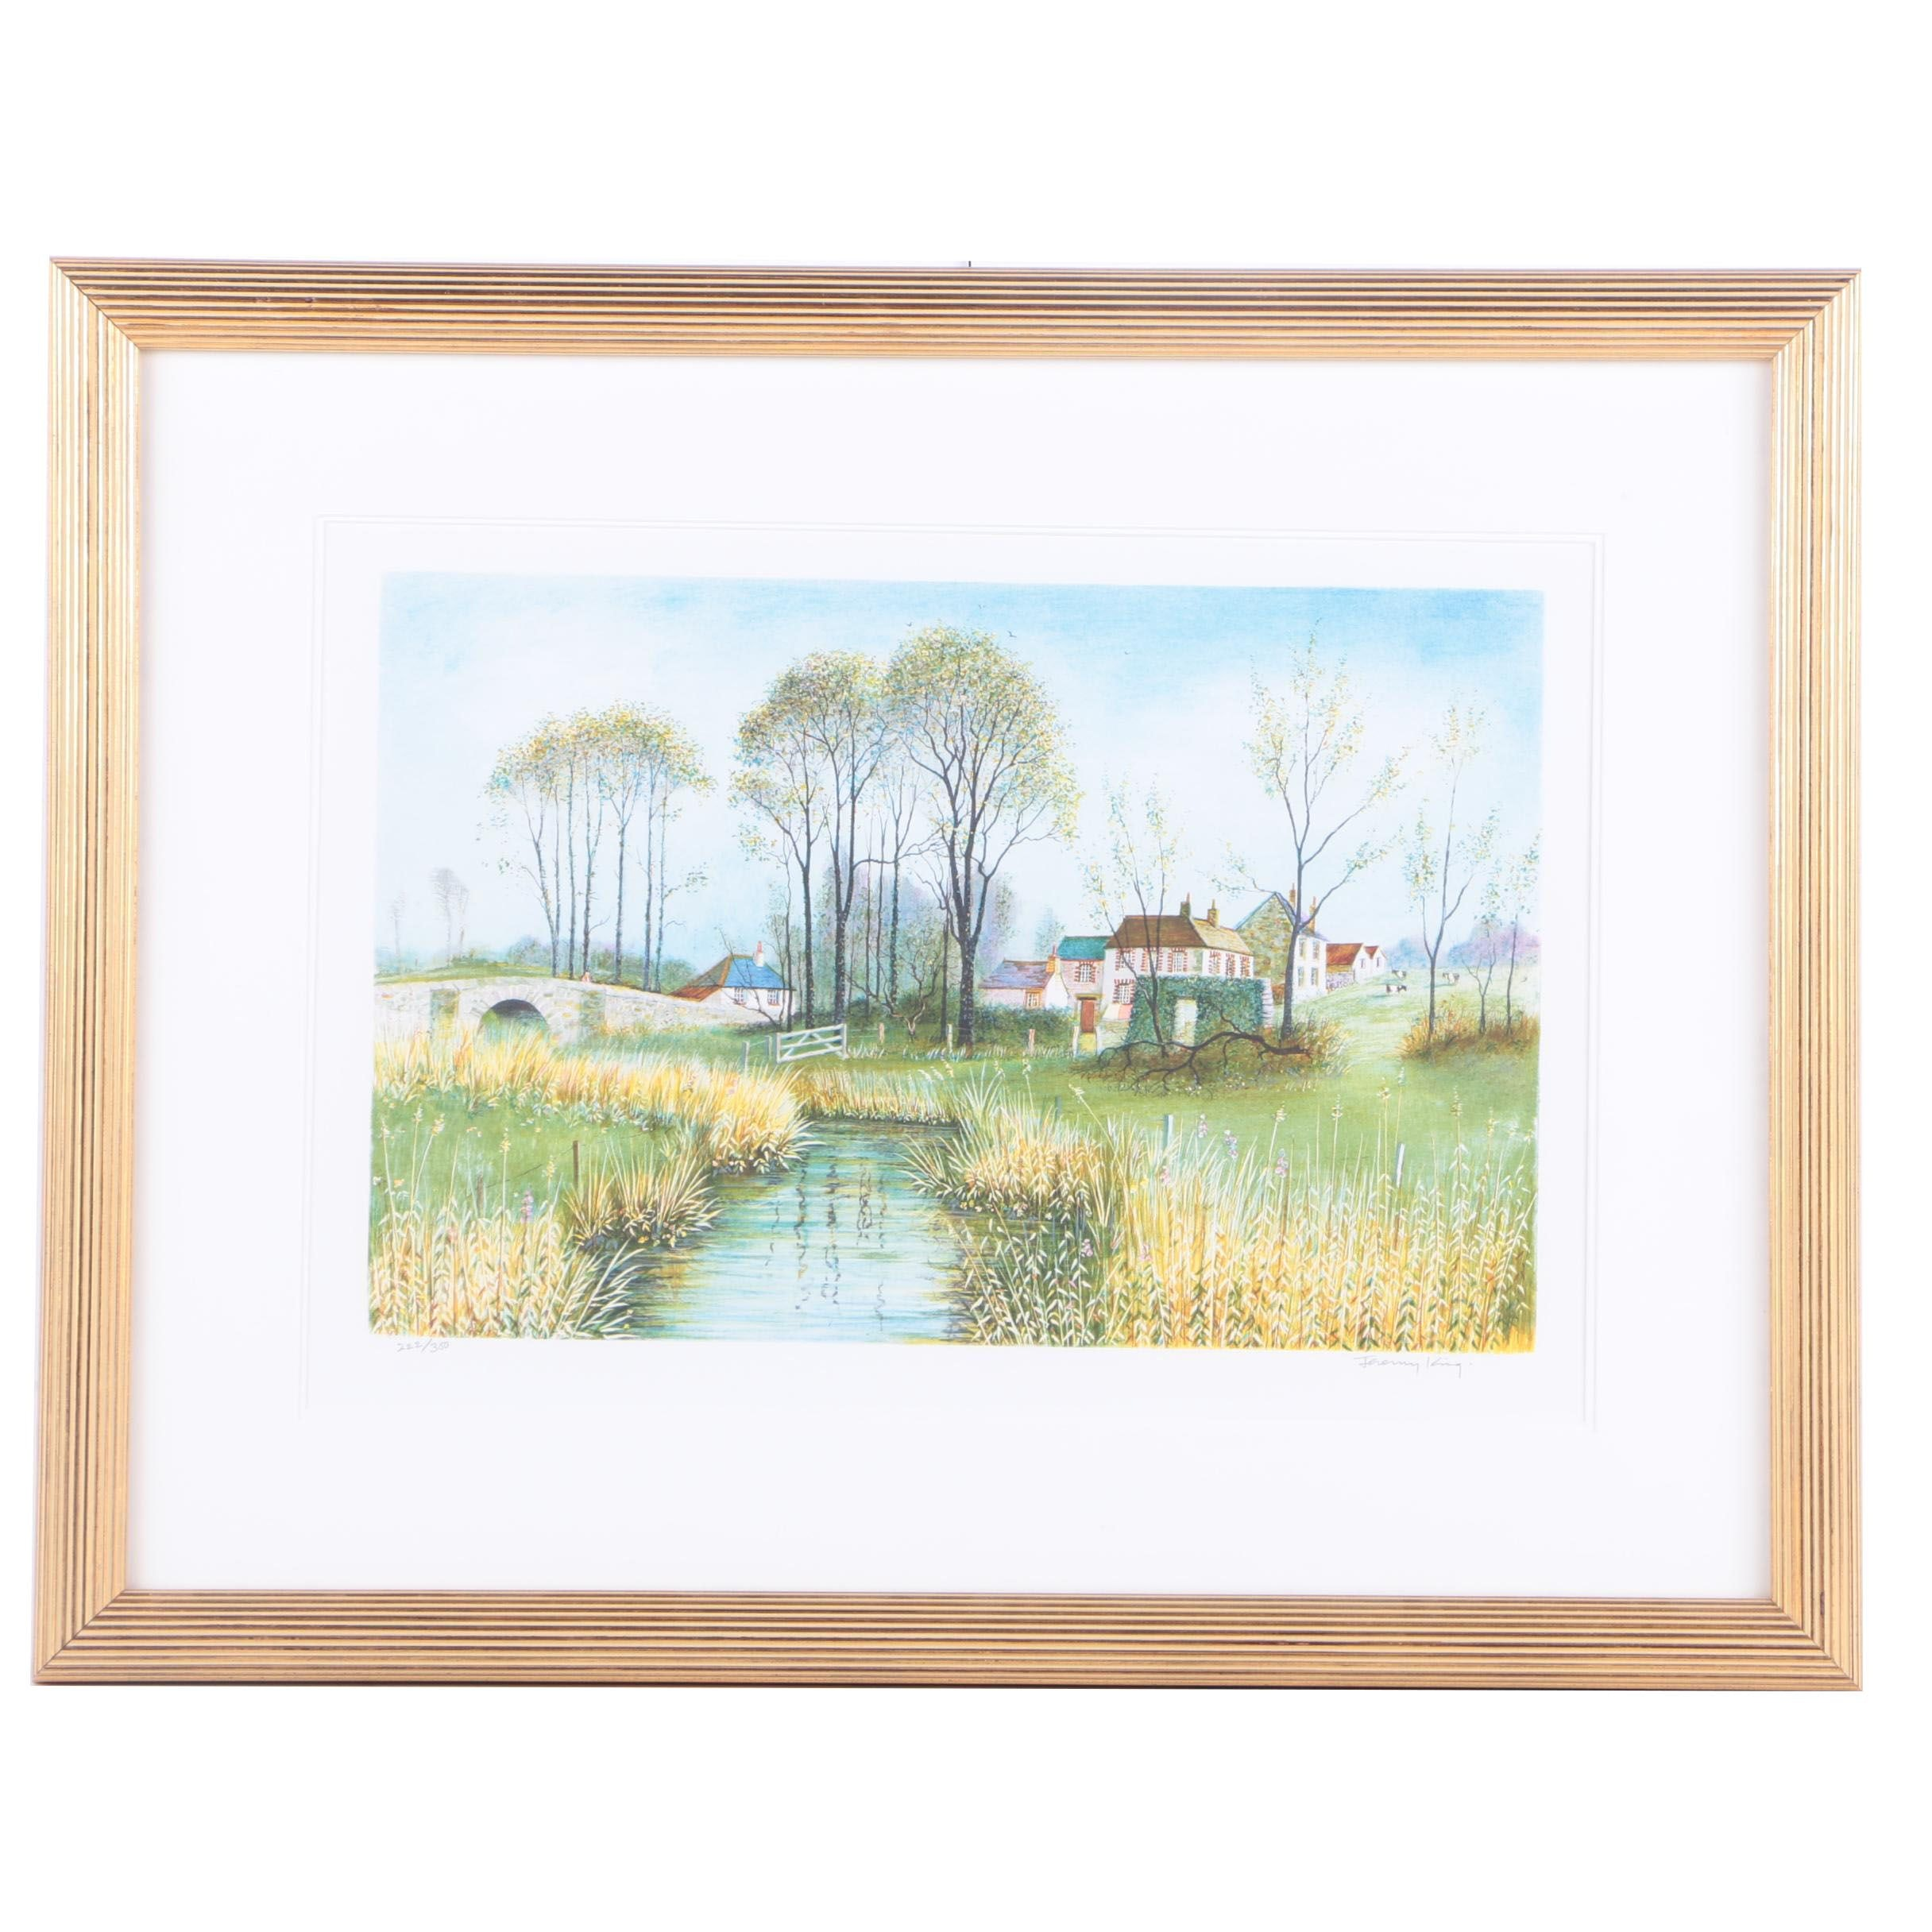 Jeremy King Limited Edition Lithograph of Rustic Town